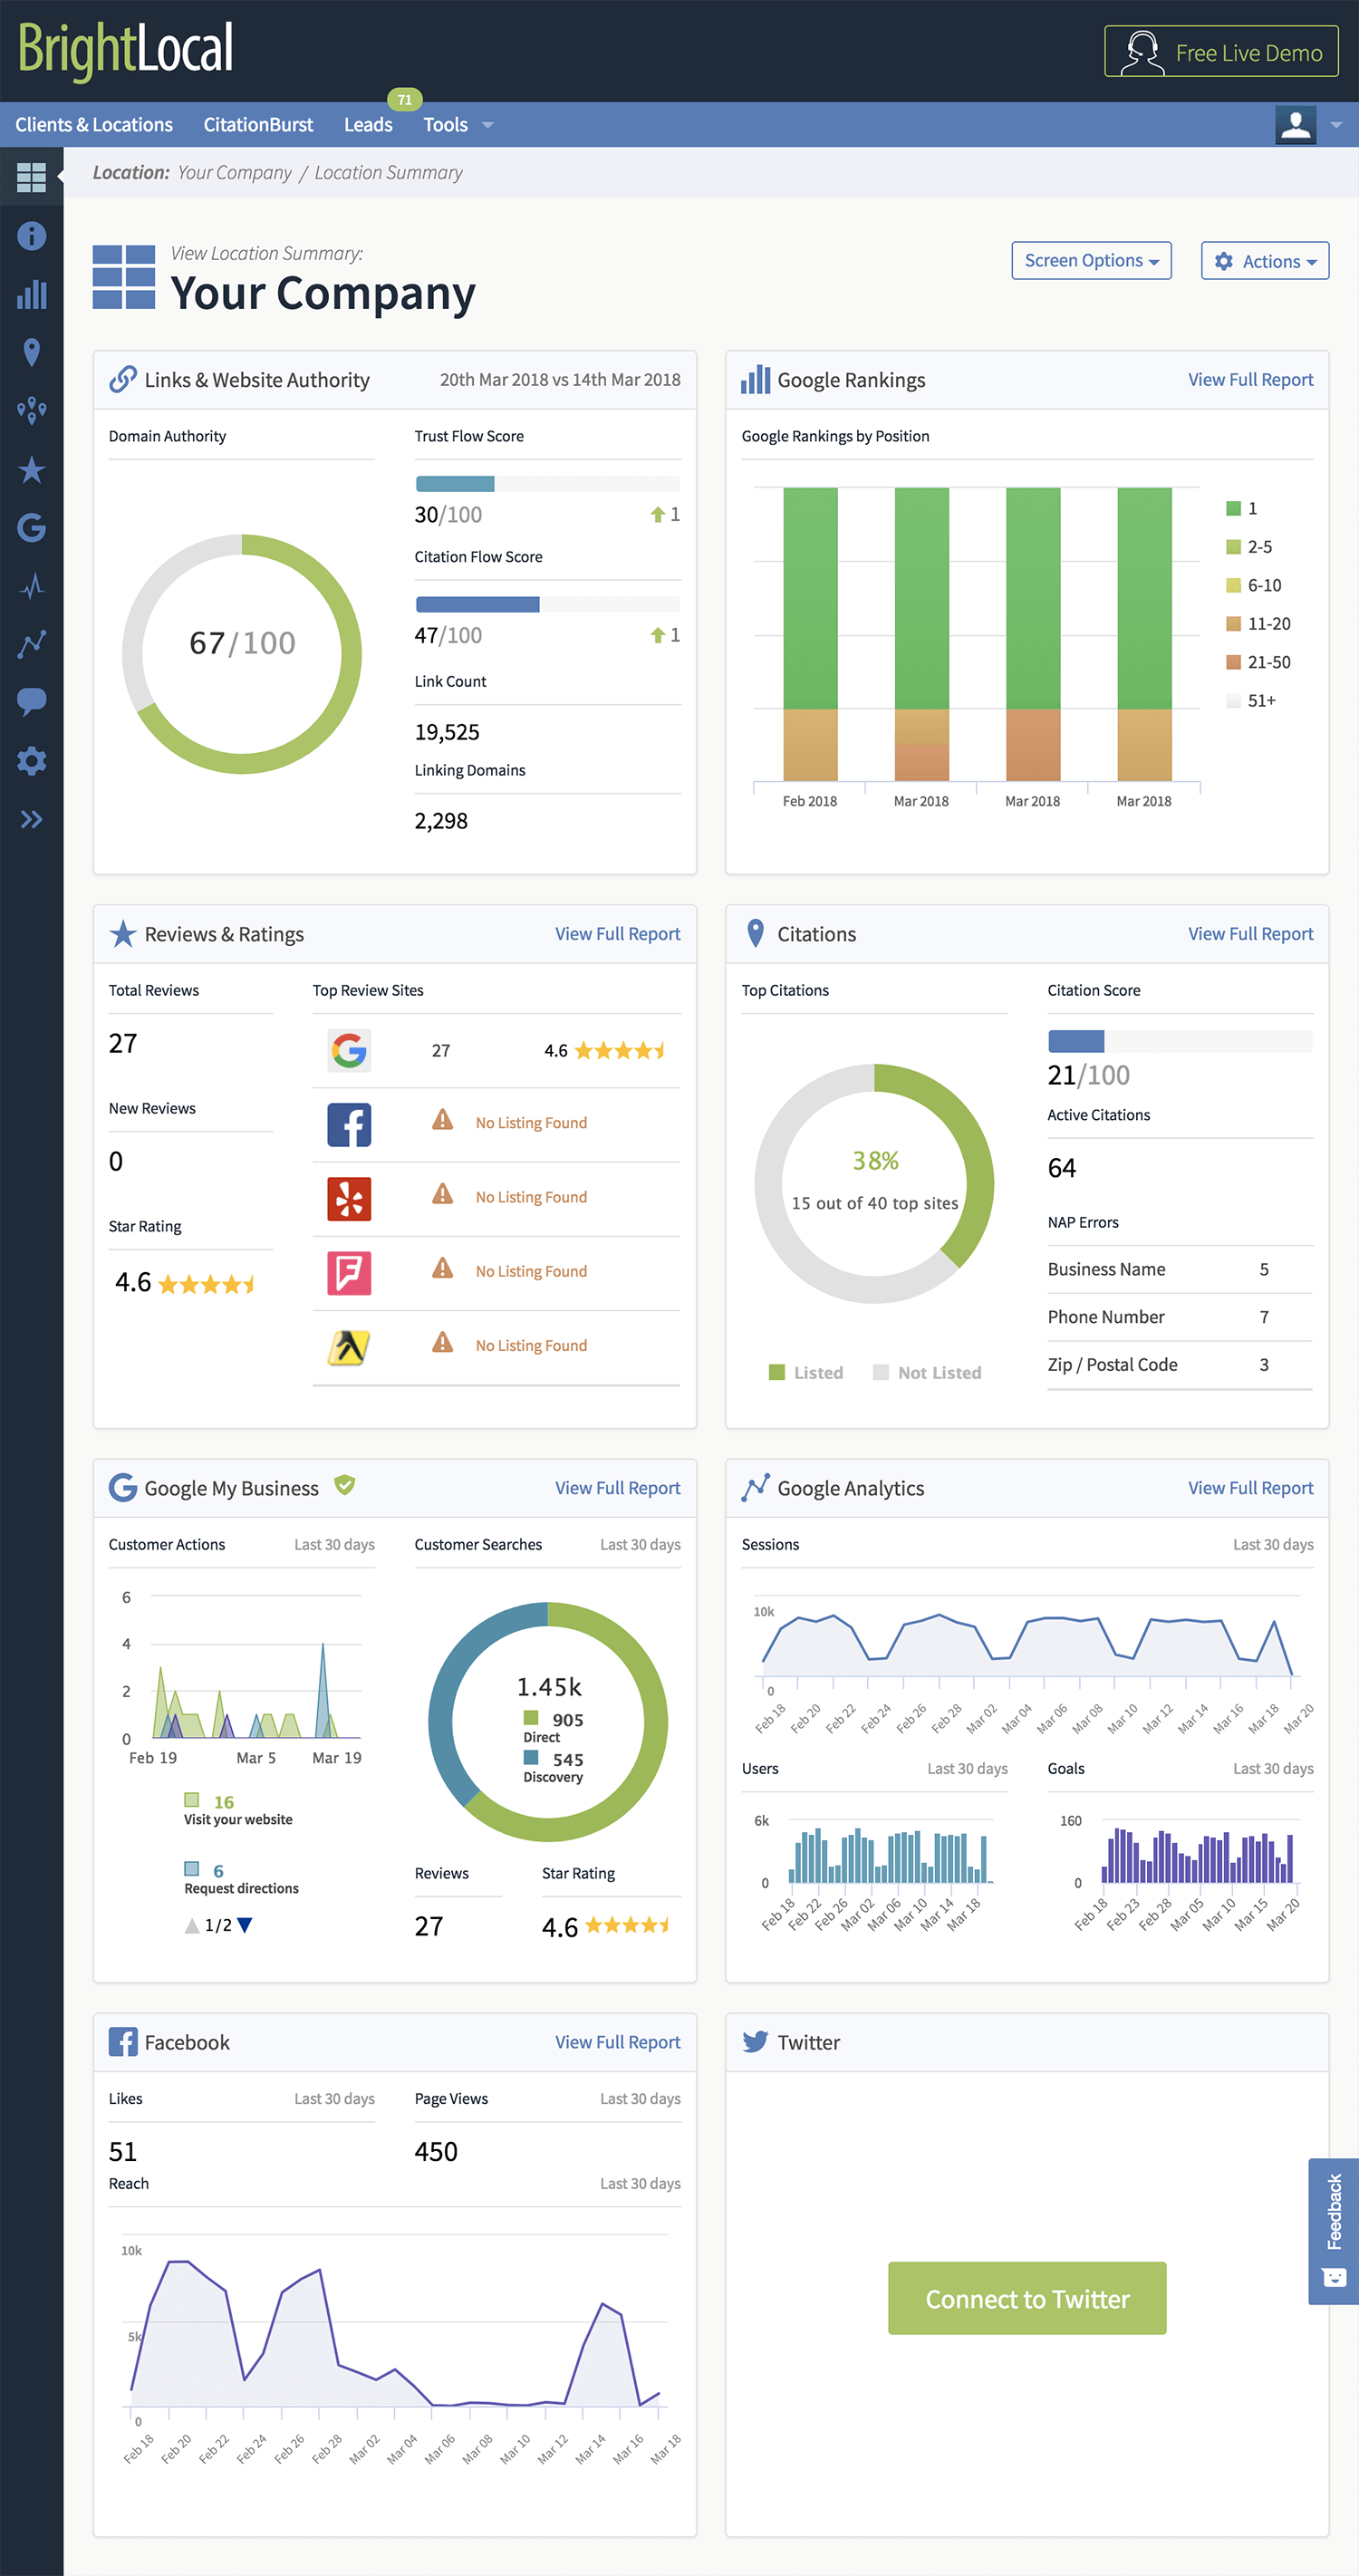 Location Dashboard Summary Screenshot